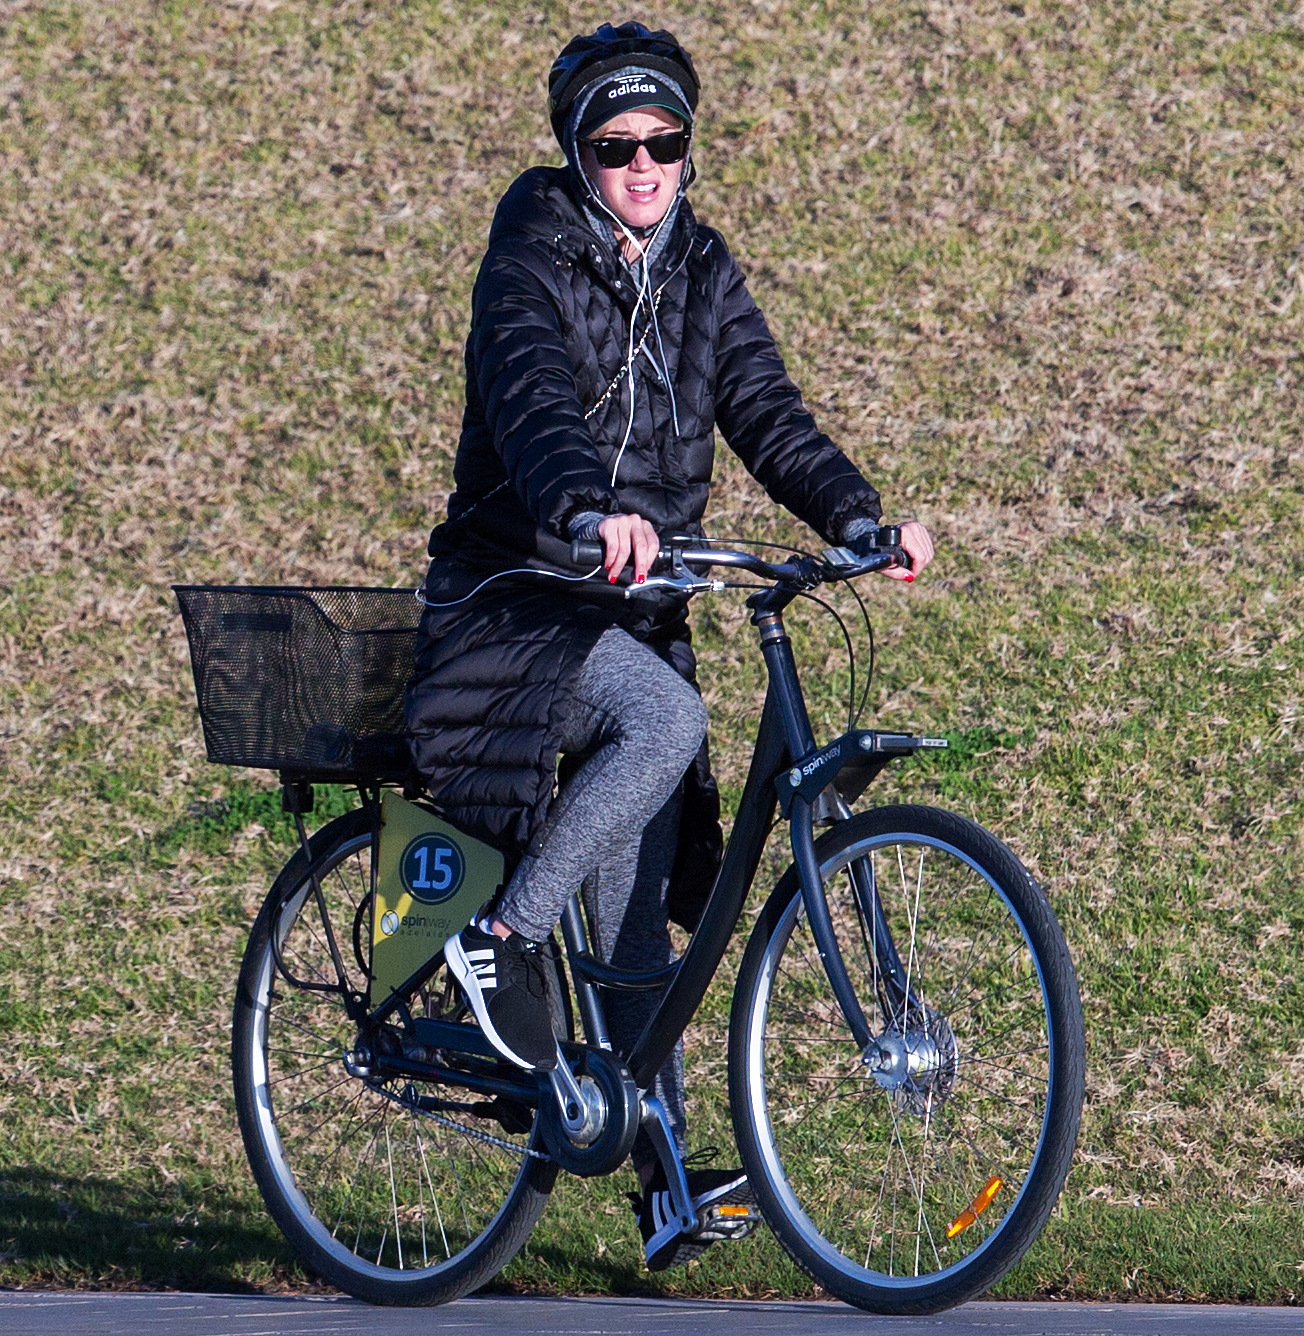 katy-perry-biking - On July 30, 2018, the American Idol judge bundled up for a winter bike ride with girlfriends in Adelaide, Australia. The singer was in town for her Witness tour.